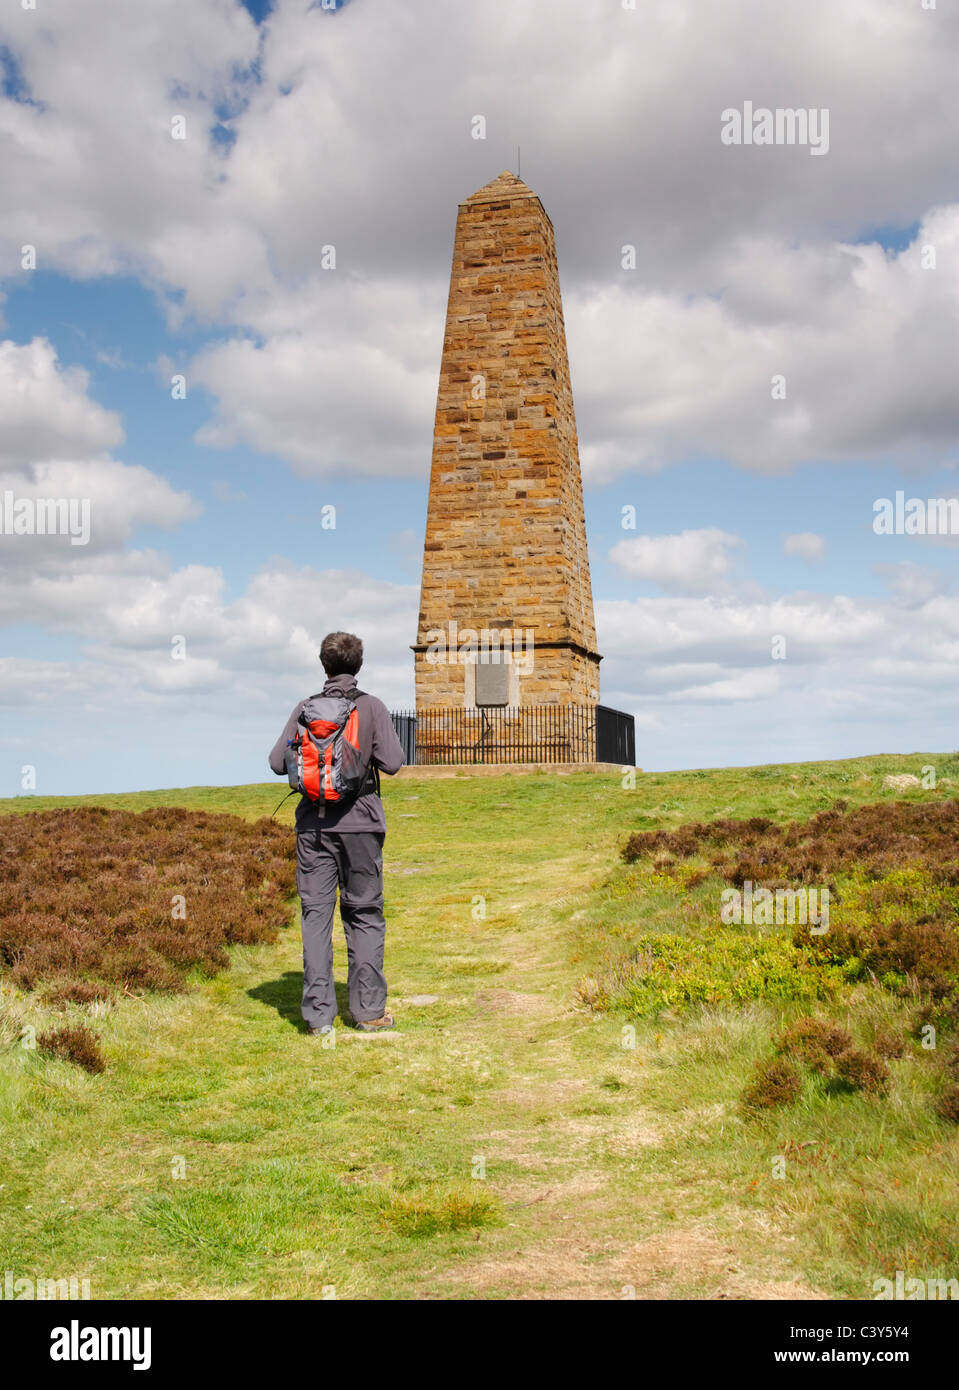 Male hiker near Captain Cook's monument on Easby moor near Great Ayton, North Yorkshire, England - Stock Image